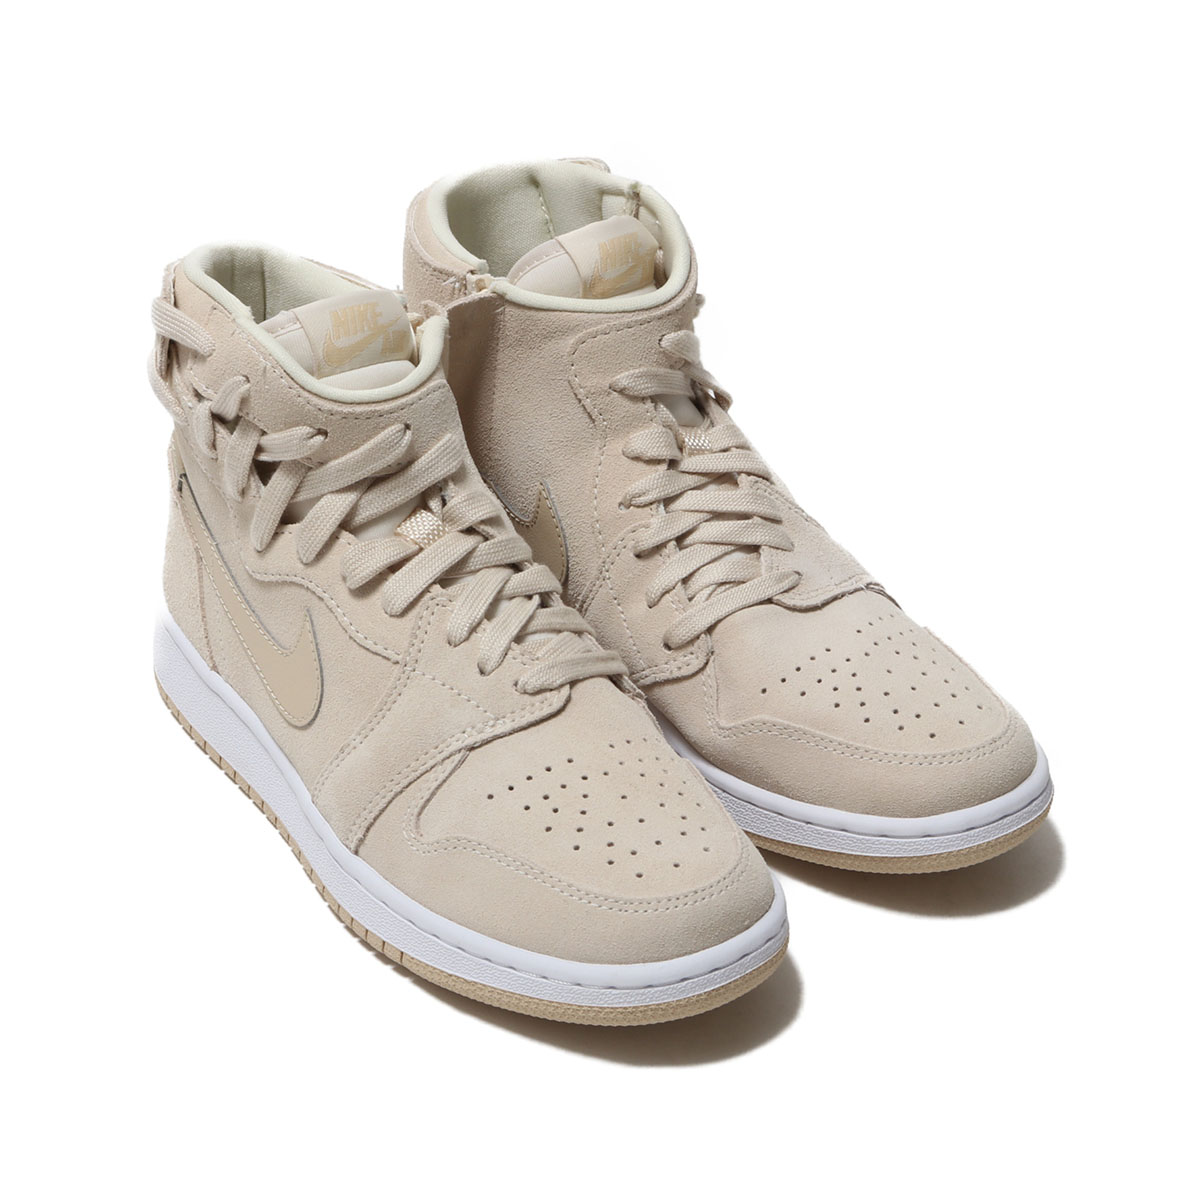 NIKE WMNS AIR JORDAN 1 REBEL XX(ナイキ ウィメンズ エア ジョーダン 1 REBEL XX)LIGHT CREAM/DESERT ORE-WHITE【レディース スニーカー】19SP-I